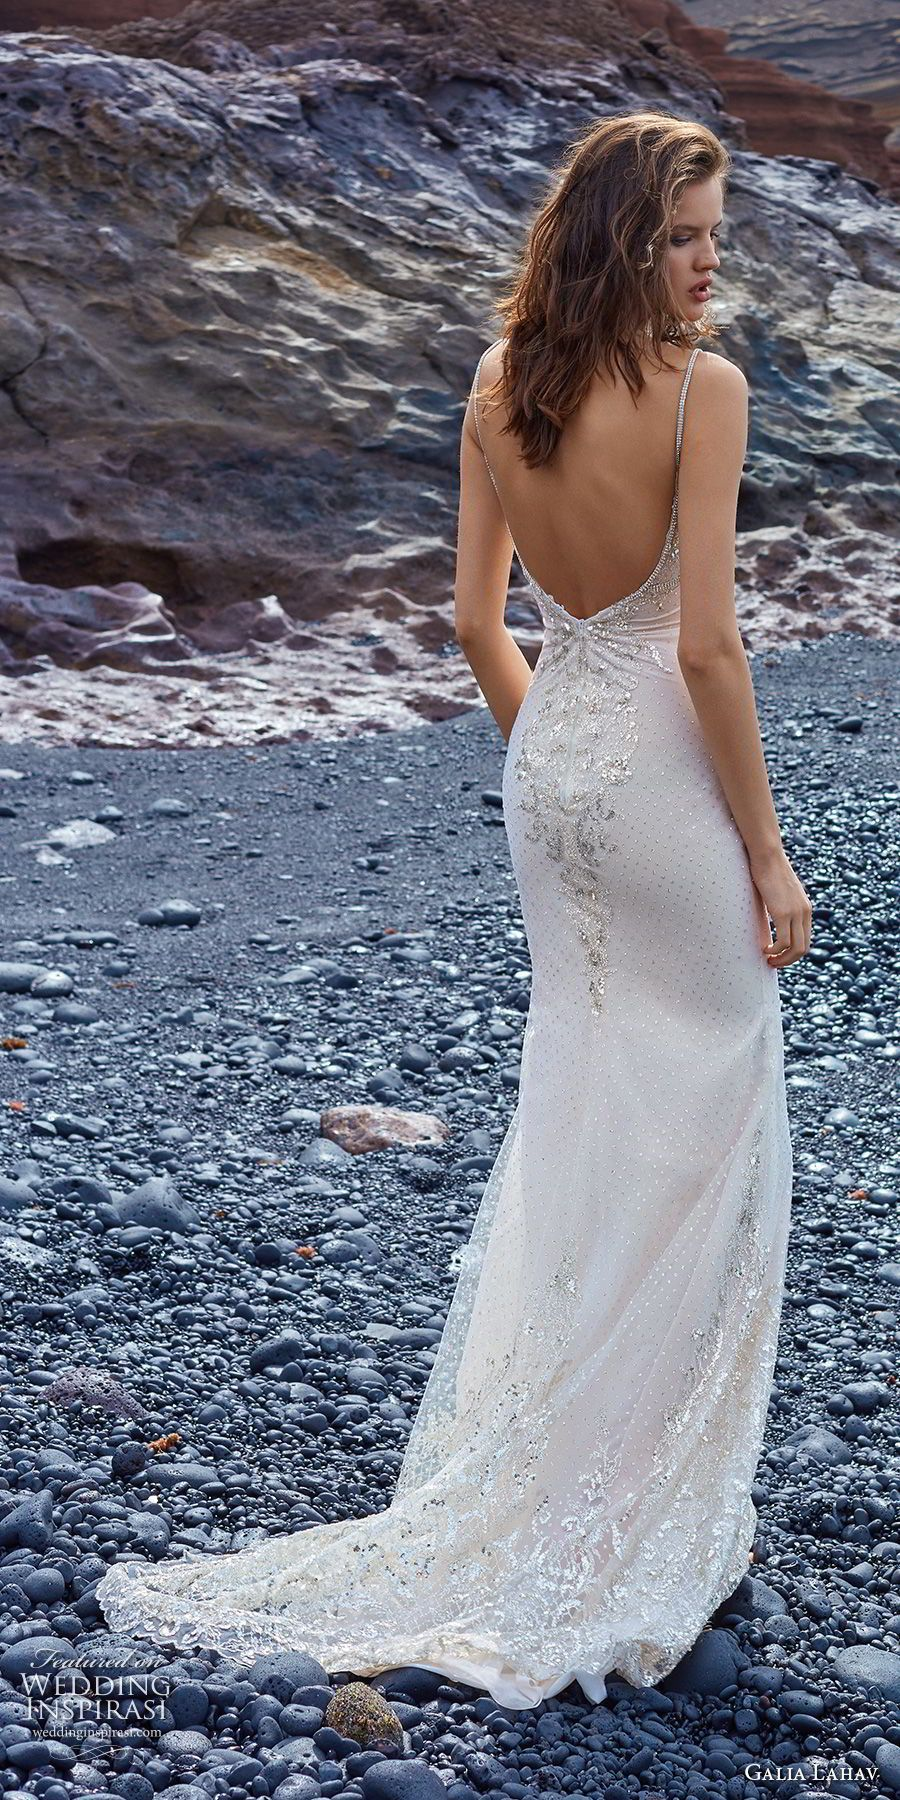 Gala by galia lahav collection no wedding dresses wedding